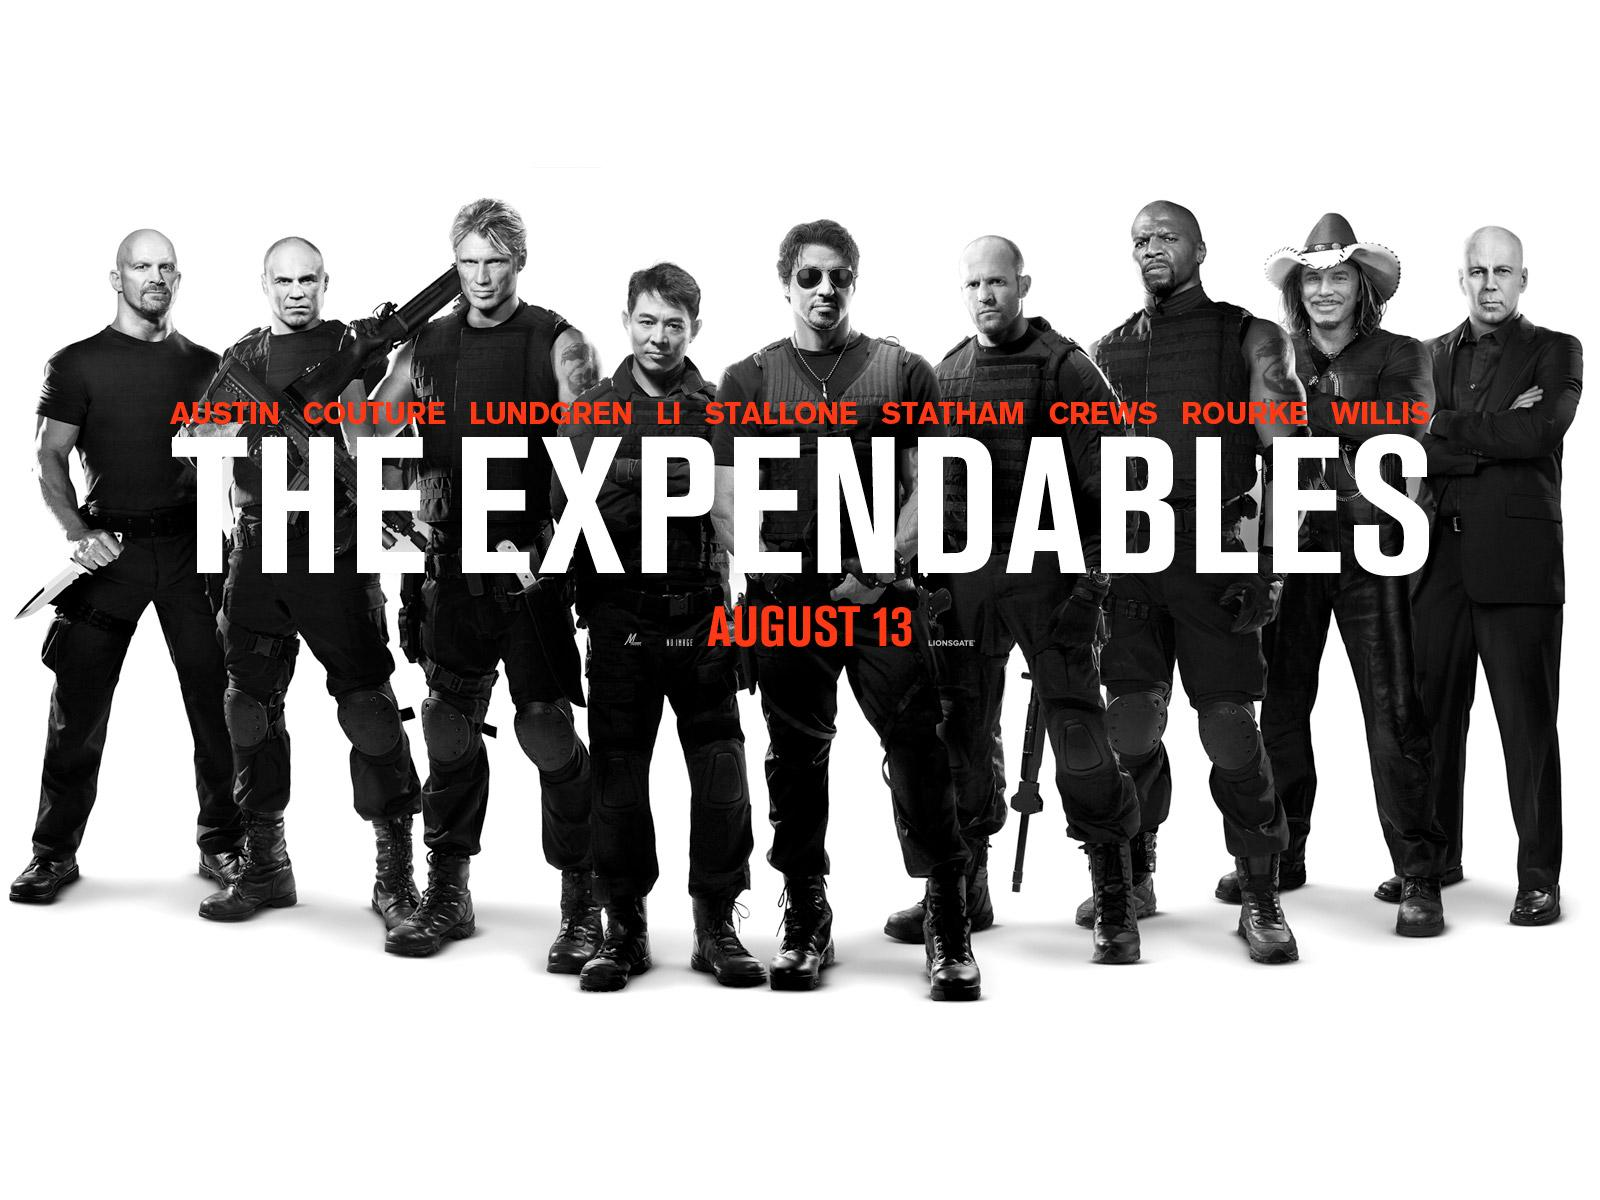 The Expendables (2010) Movie 427.51 Kb